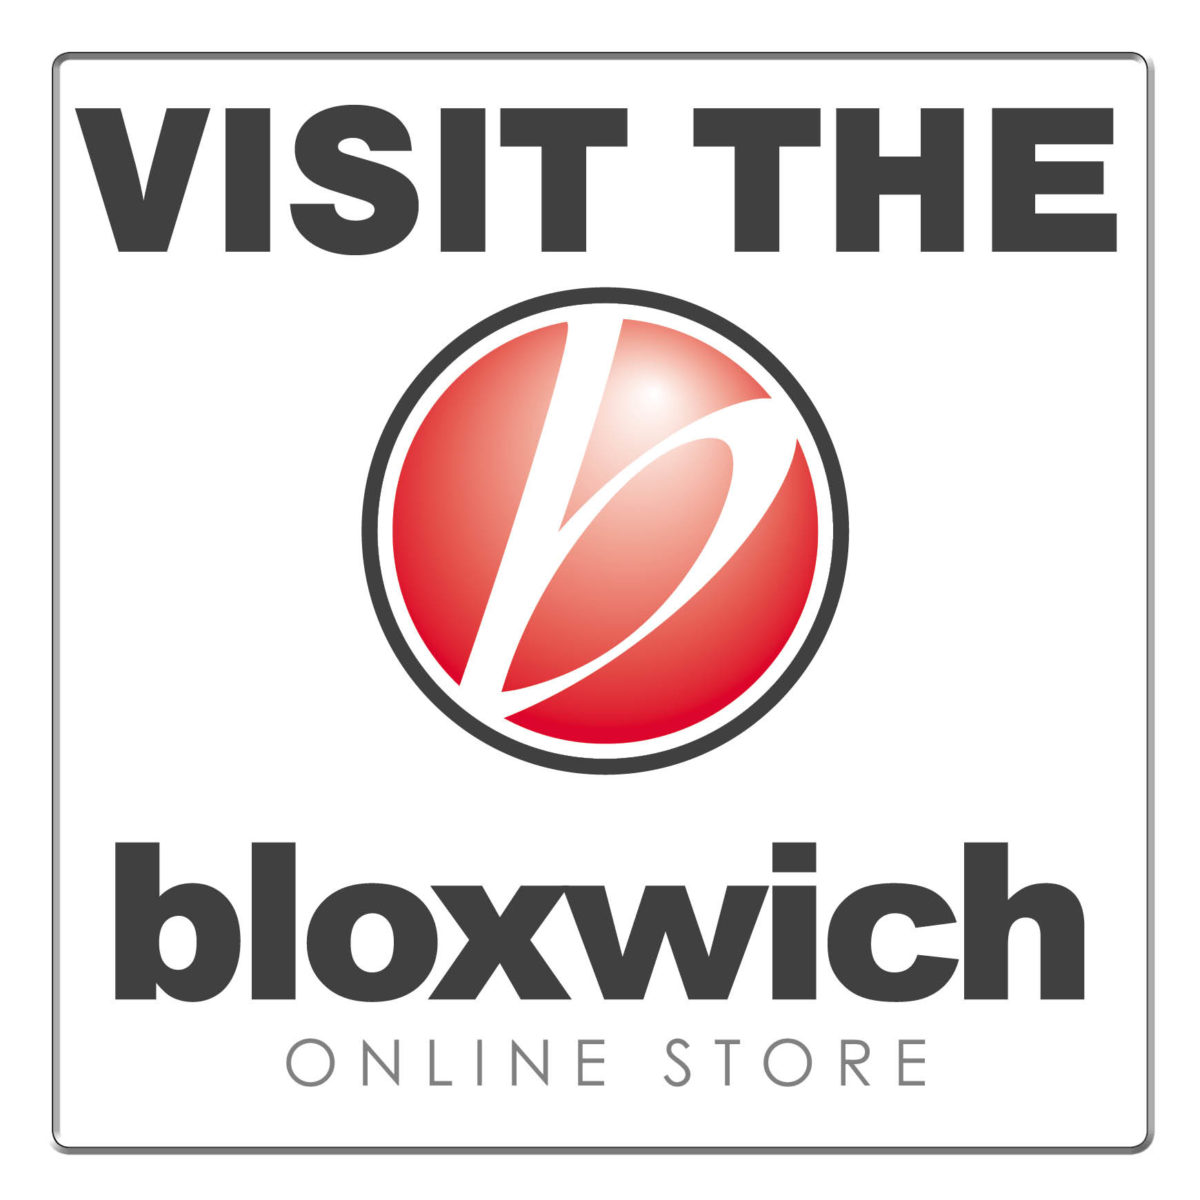 Visit the bloxwich online store website